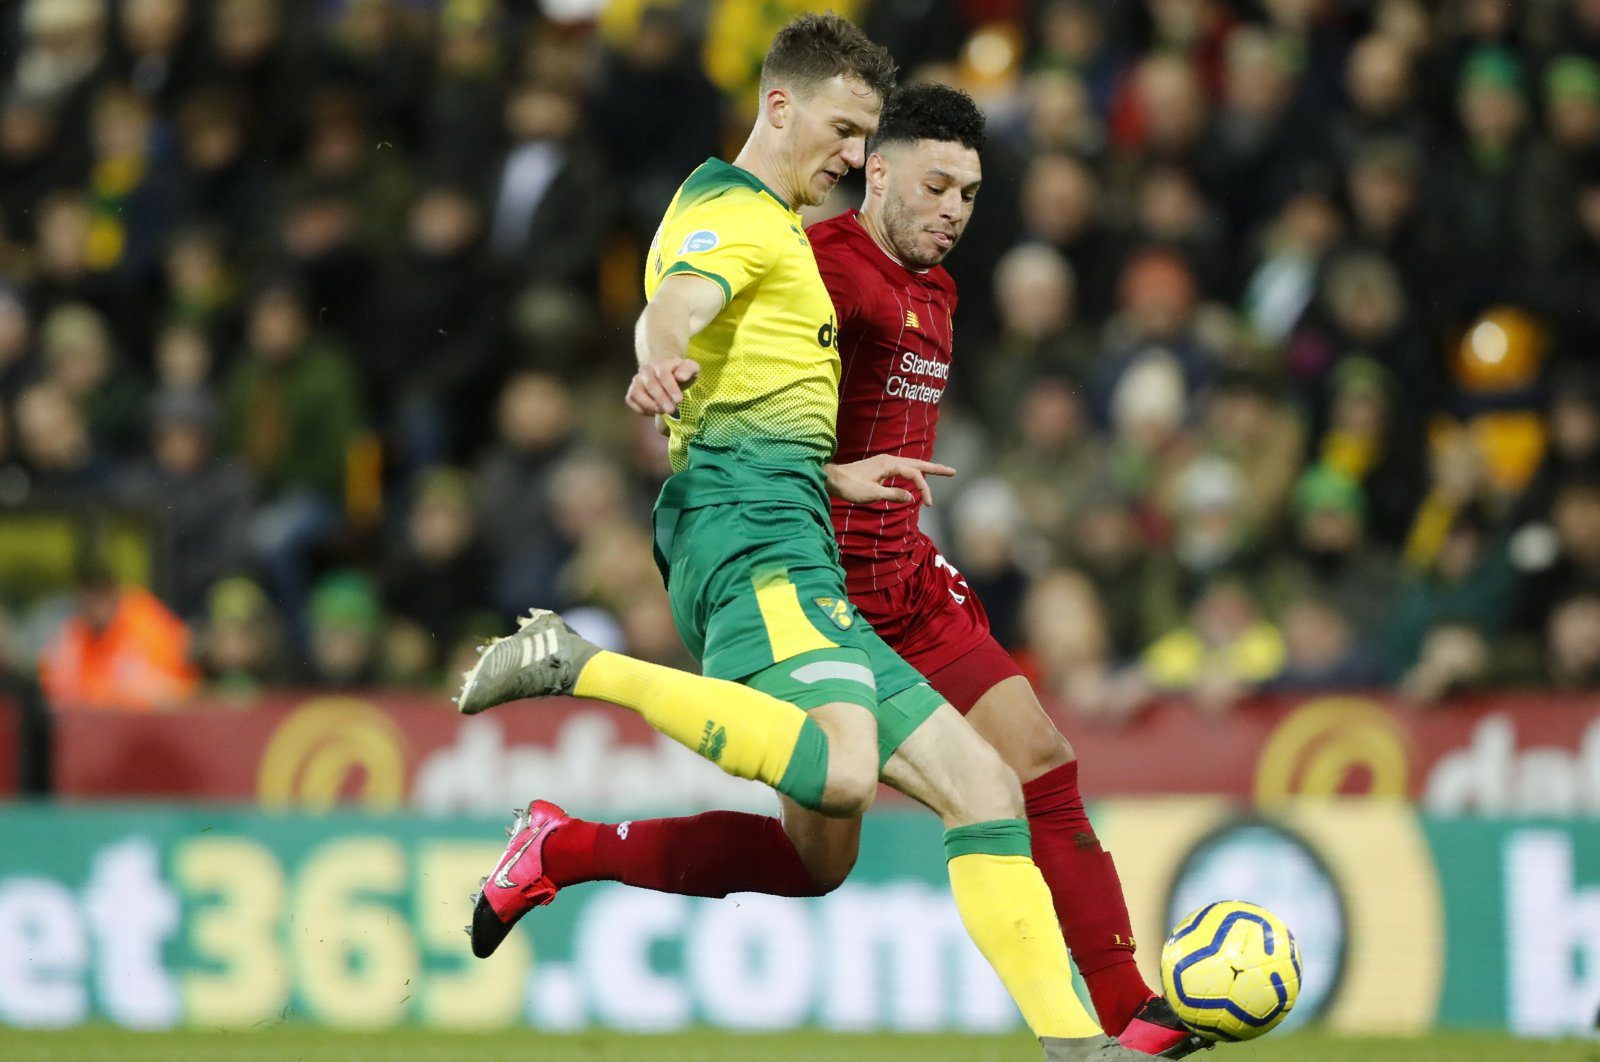 Norwich City's Max Aarons, front, duels for the ball with Liverpool's Alex Oxlade-Chamberlain during a Premier League match in Norwich, England, Feb. 15, 2020. (AP Photo)